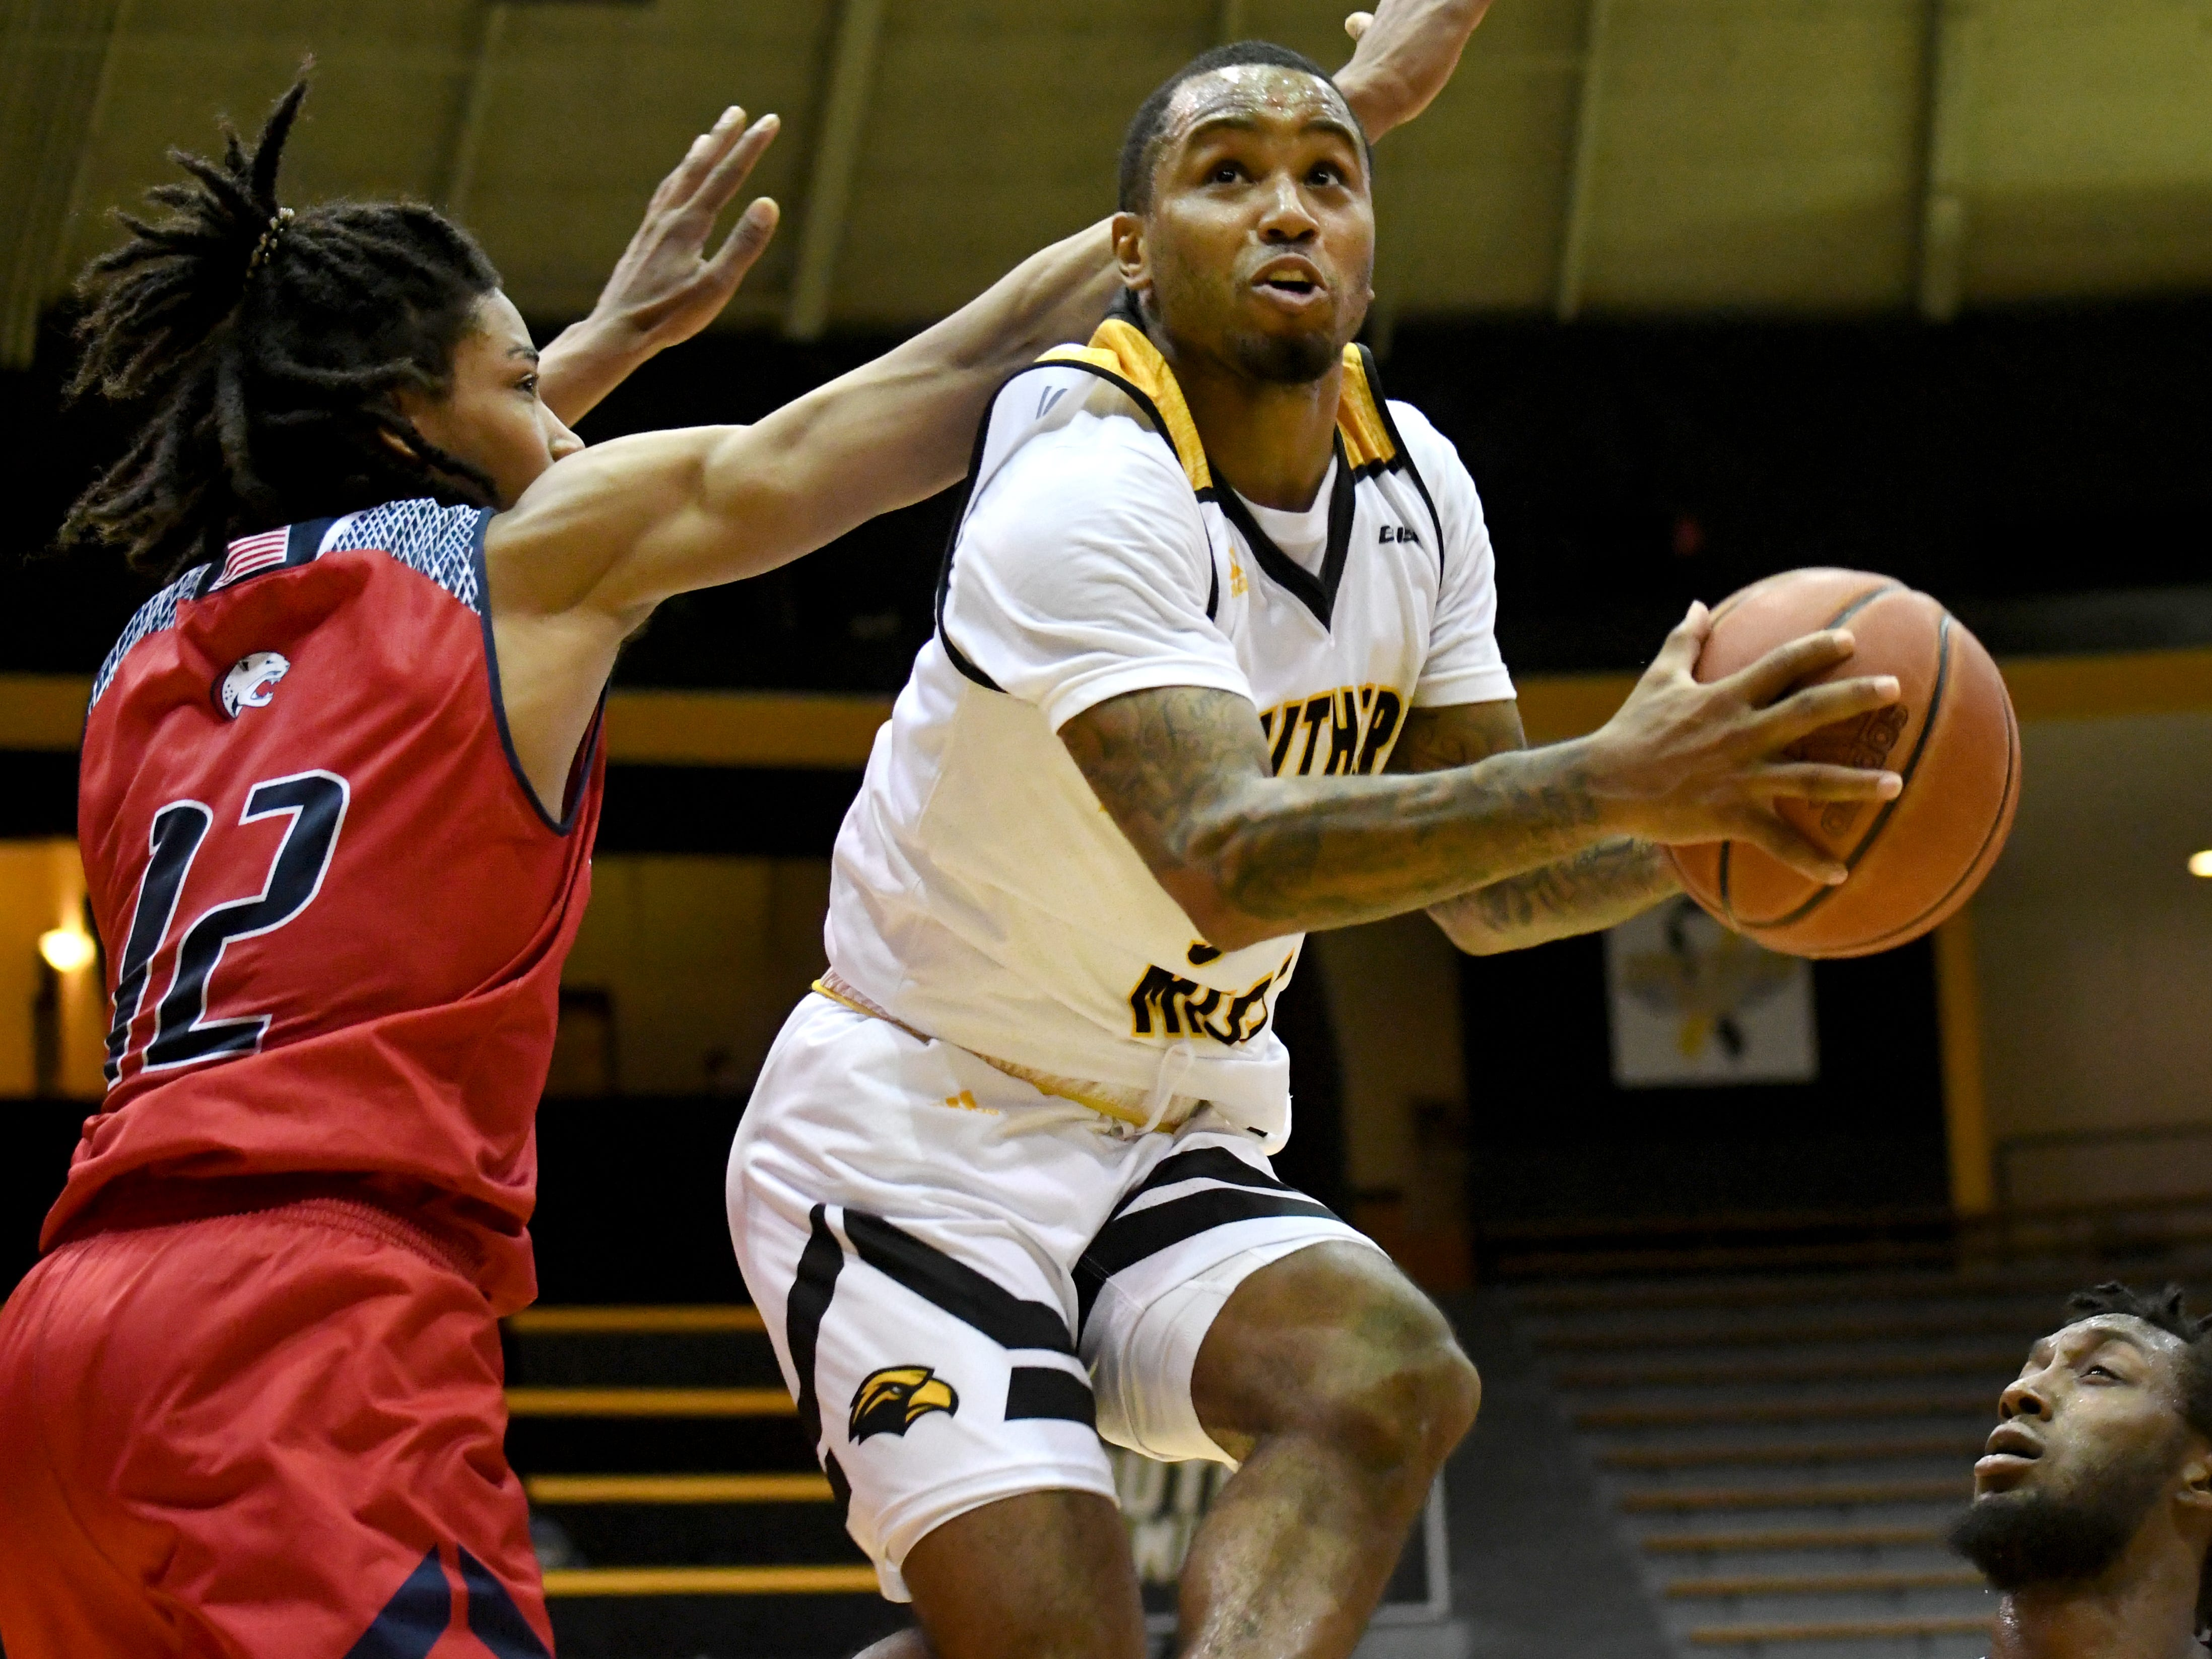 Southern Miss guard Tyree Griffins shoots for the basket in a game against South Alabama in Reed Green Coliseum on Wednesday, November 28, 2018.